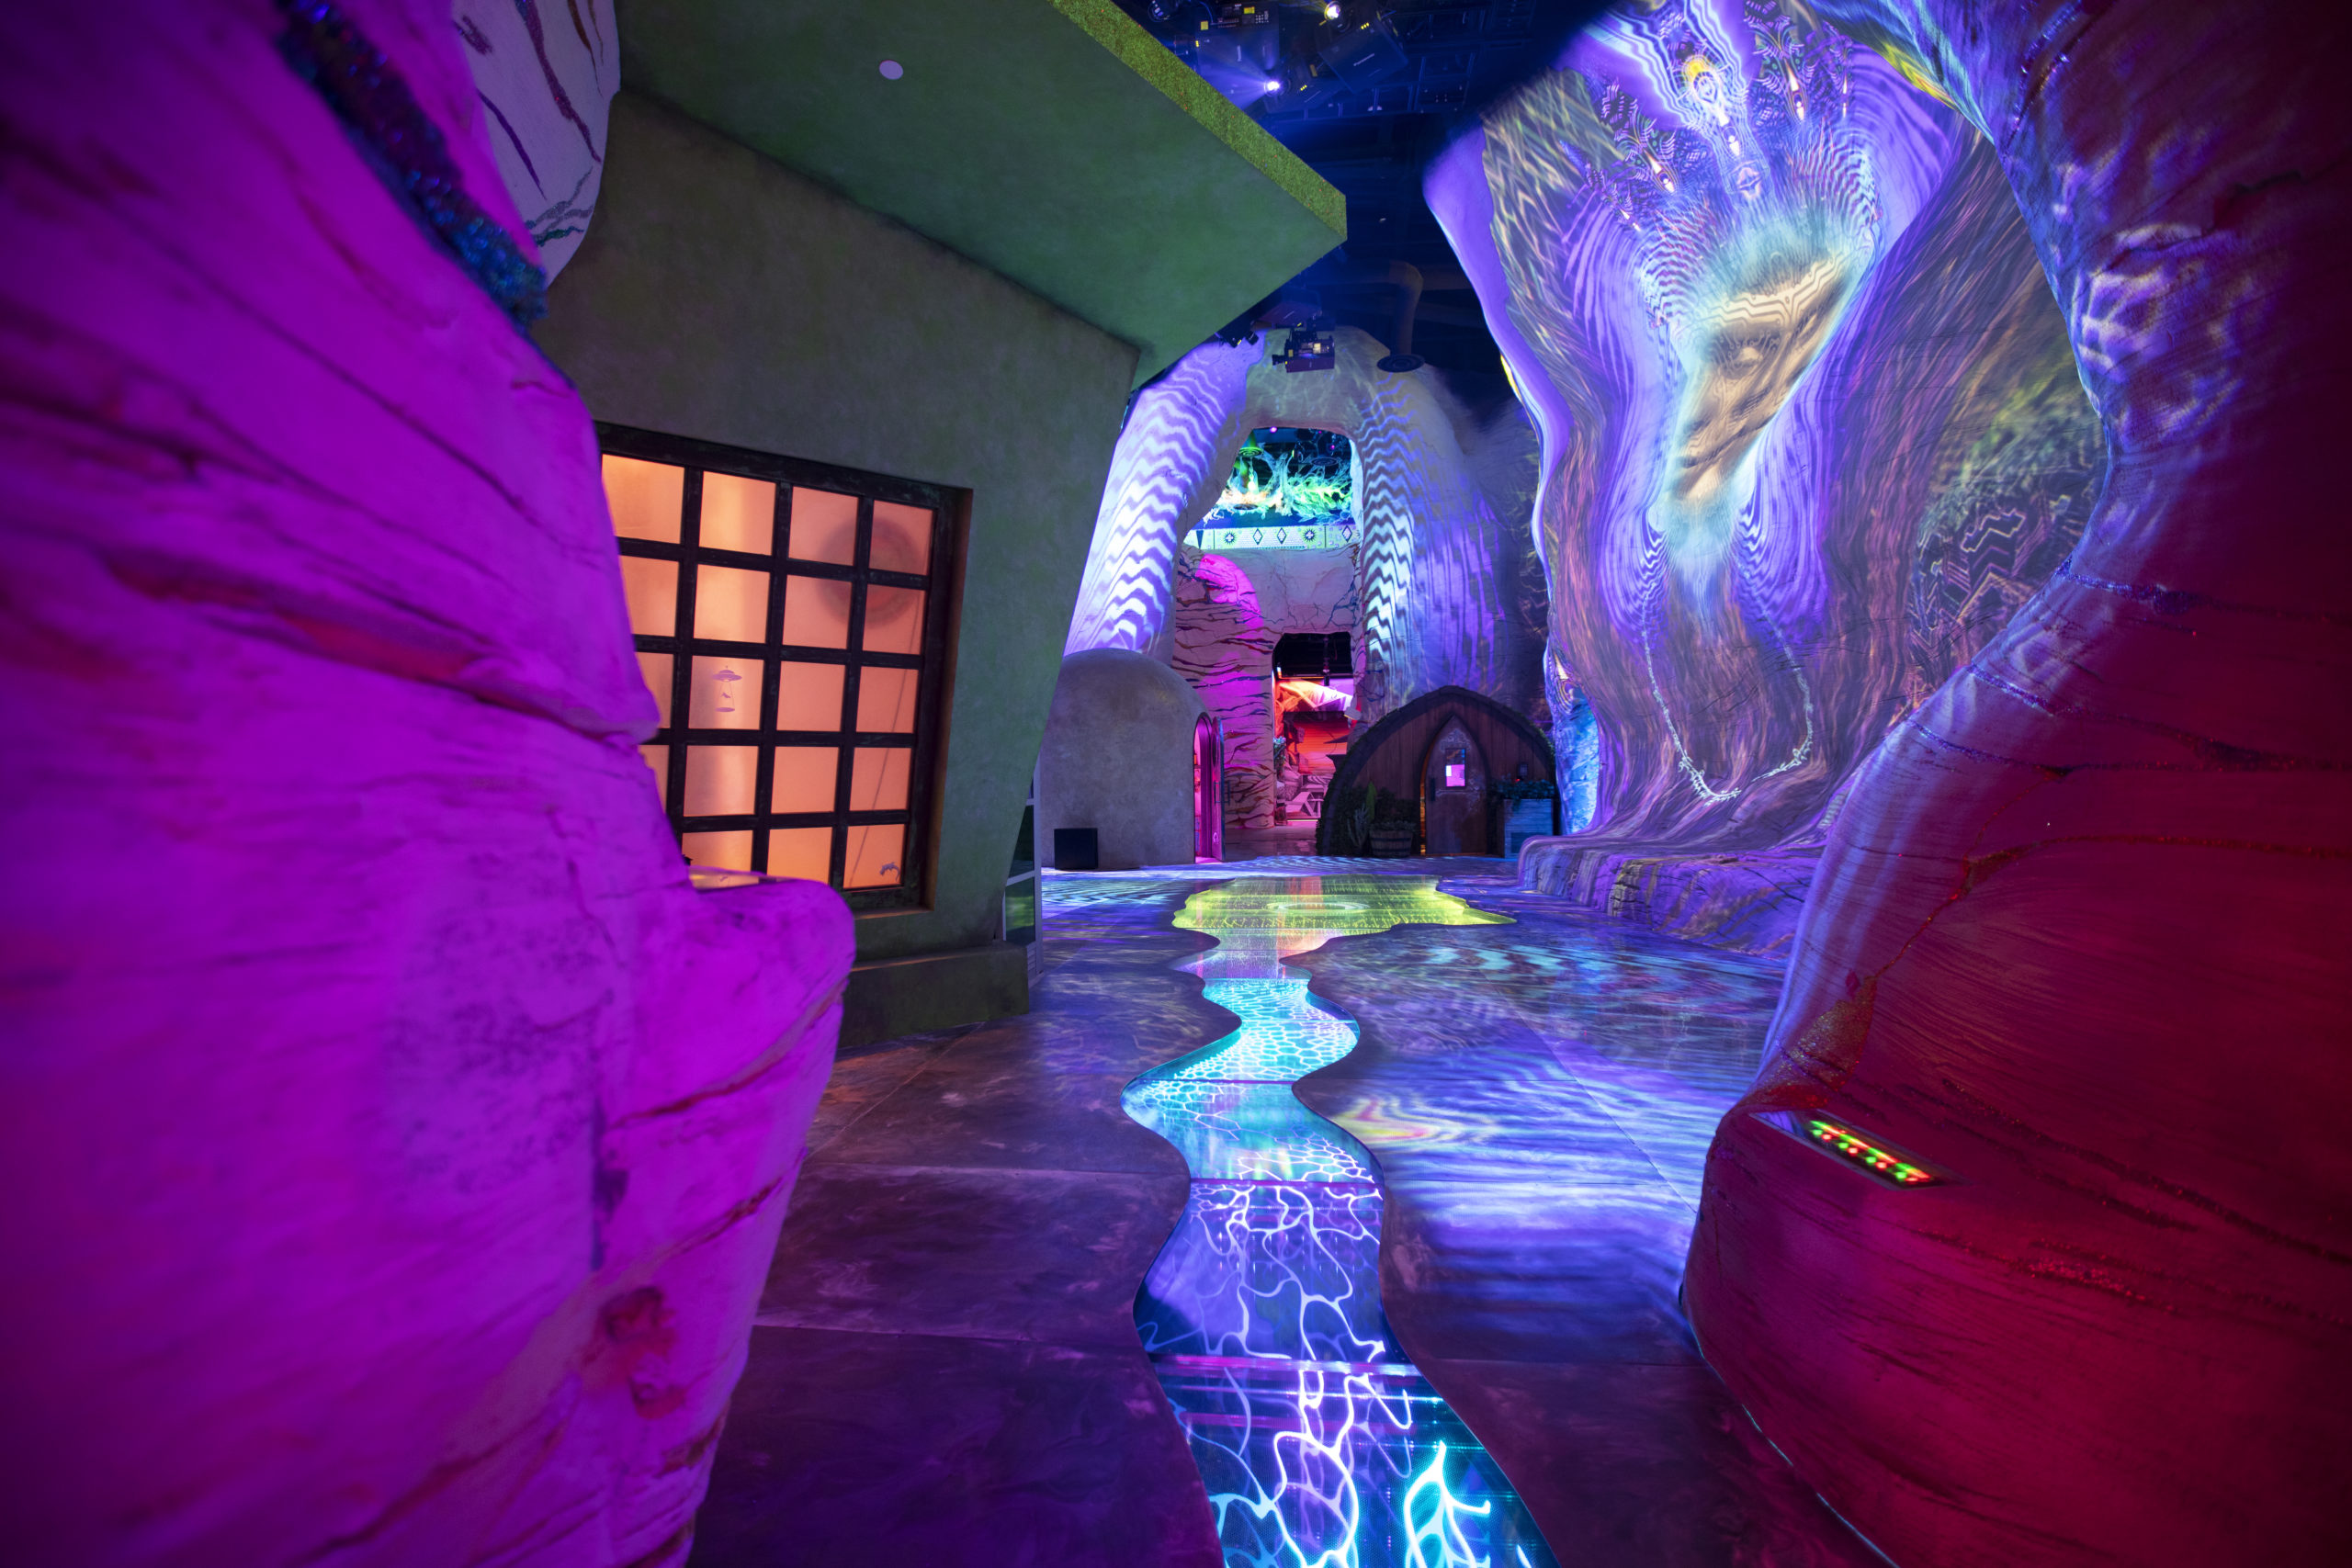 The Meow Wolf Las Vegas exhibit coming to completion in January of 2021